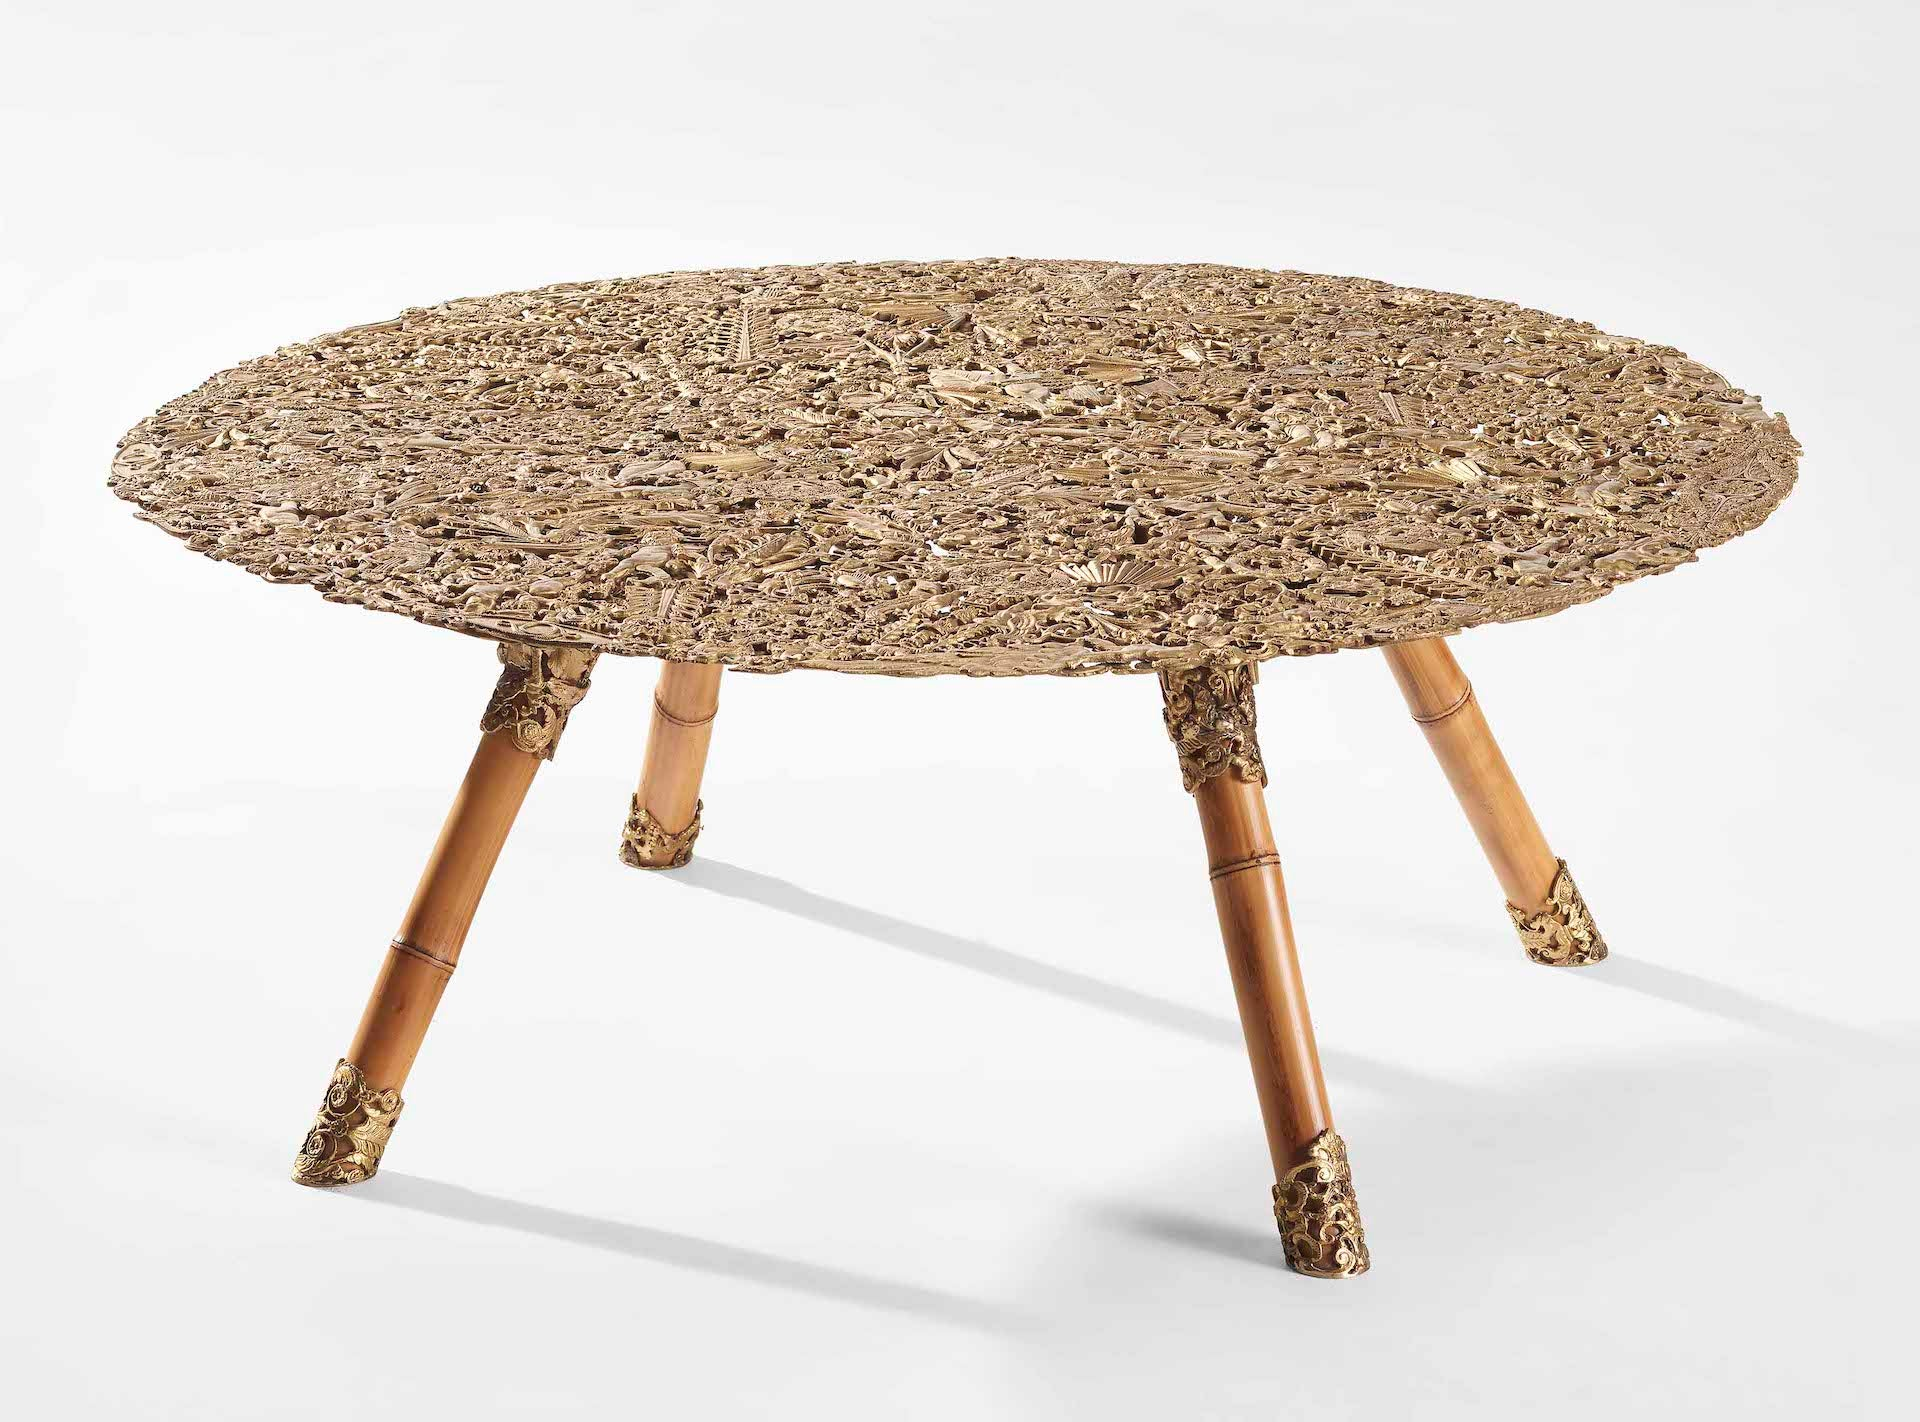 Christie's New York 27 May 2021 - Design [lot 290]: Brazilian Baroque Filigrana Low Table by Humberto and Fernando Campana, 2013. Estimate: $25,000 - $35,000. Sold: $162,500. Photo © Christie's Images Limited 2021